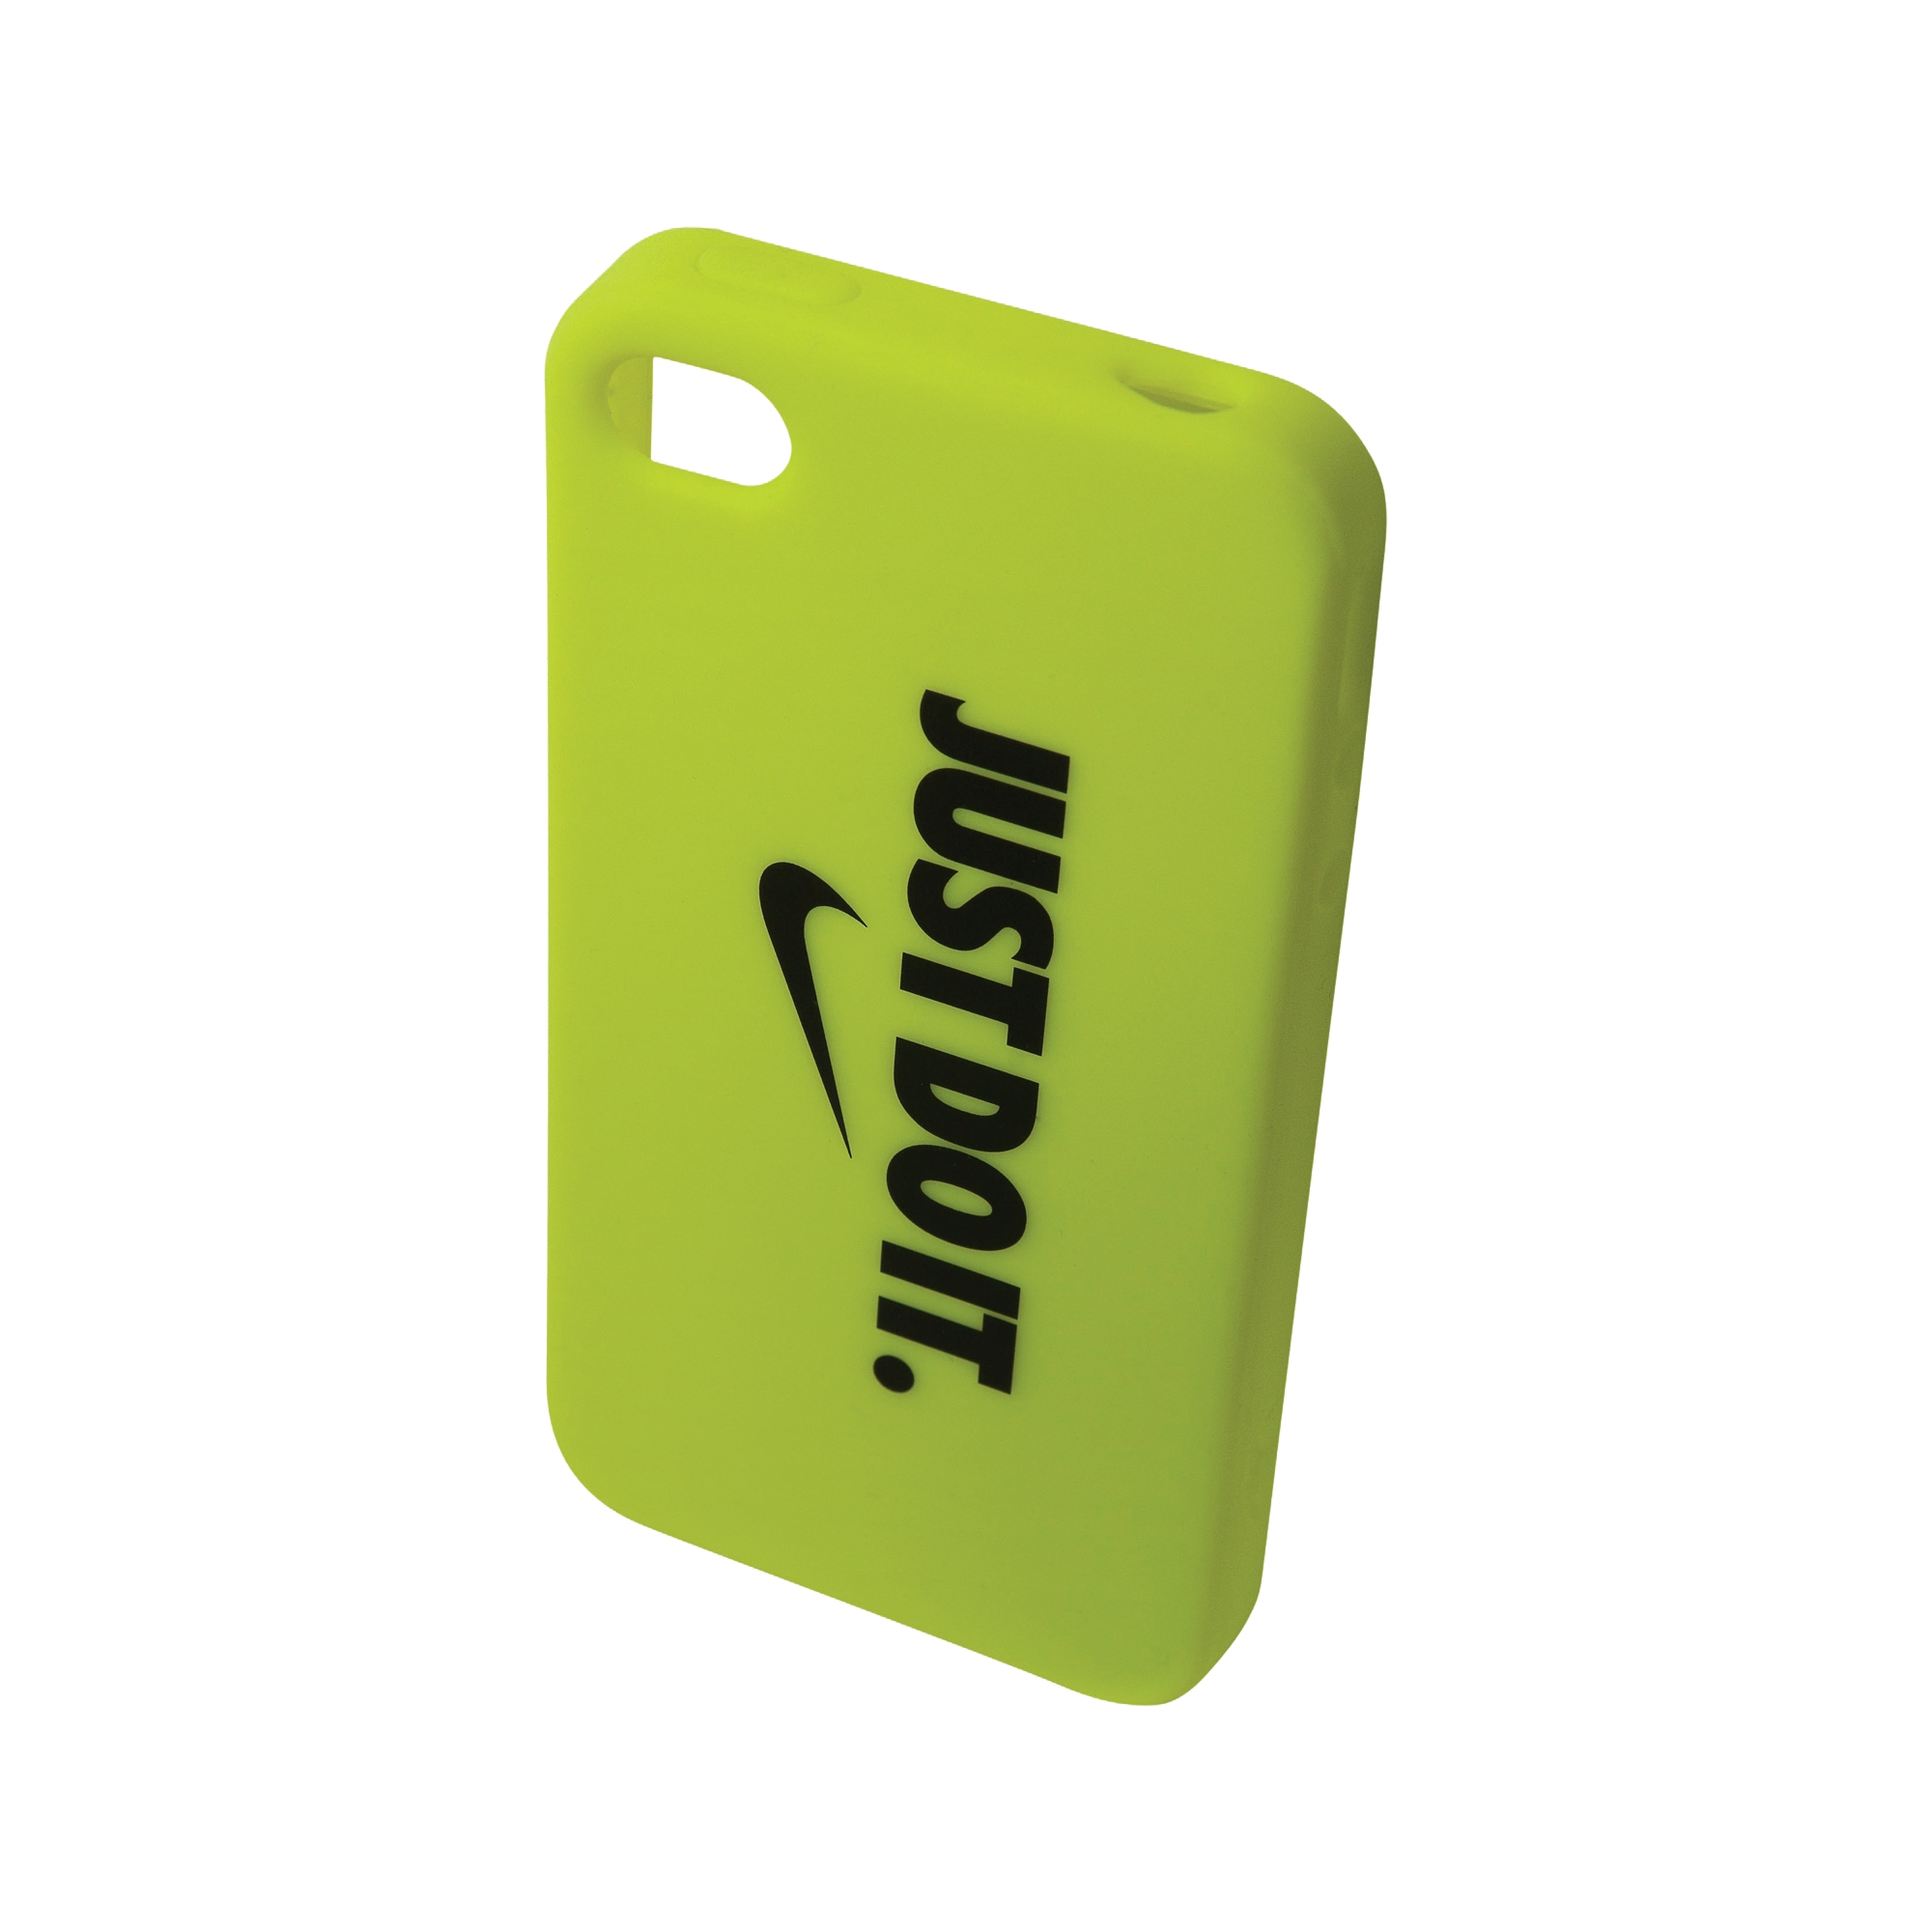 nike case 14 Amazonca: nike case amazonca try prime all cdn$ 1499 (3 new offers) nike iphone 6 case by nike iphone 6 case cdn$ 2000 (1 new offer) 3 out of 5 stars 1.